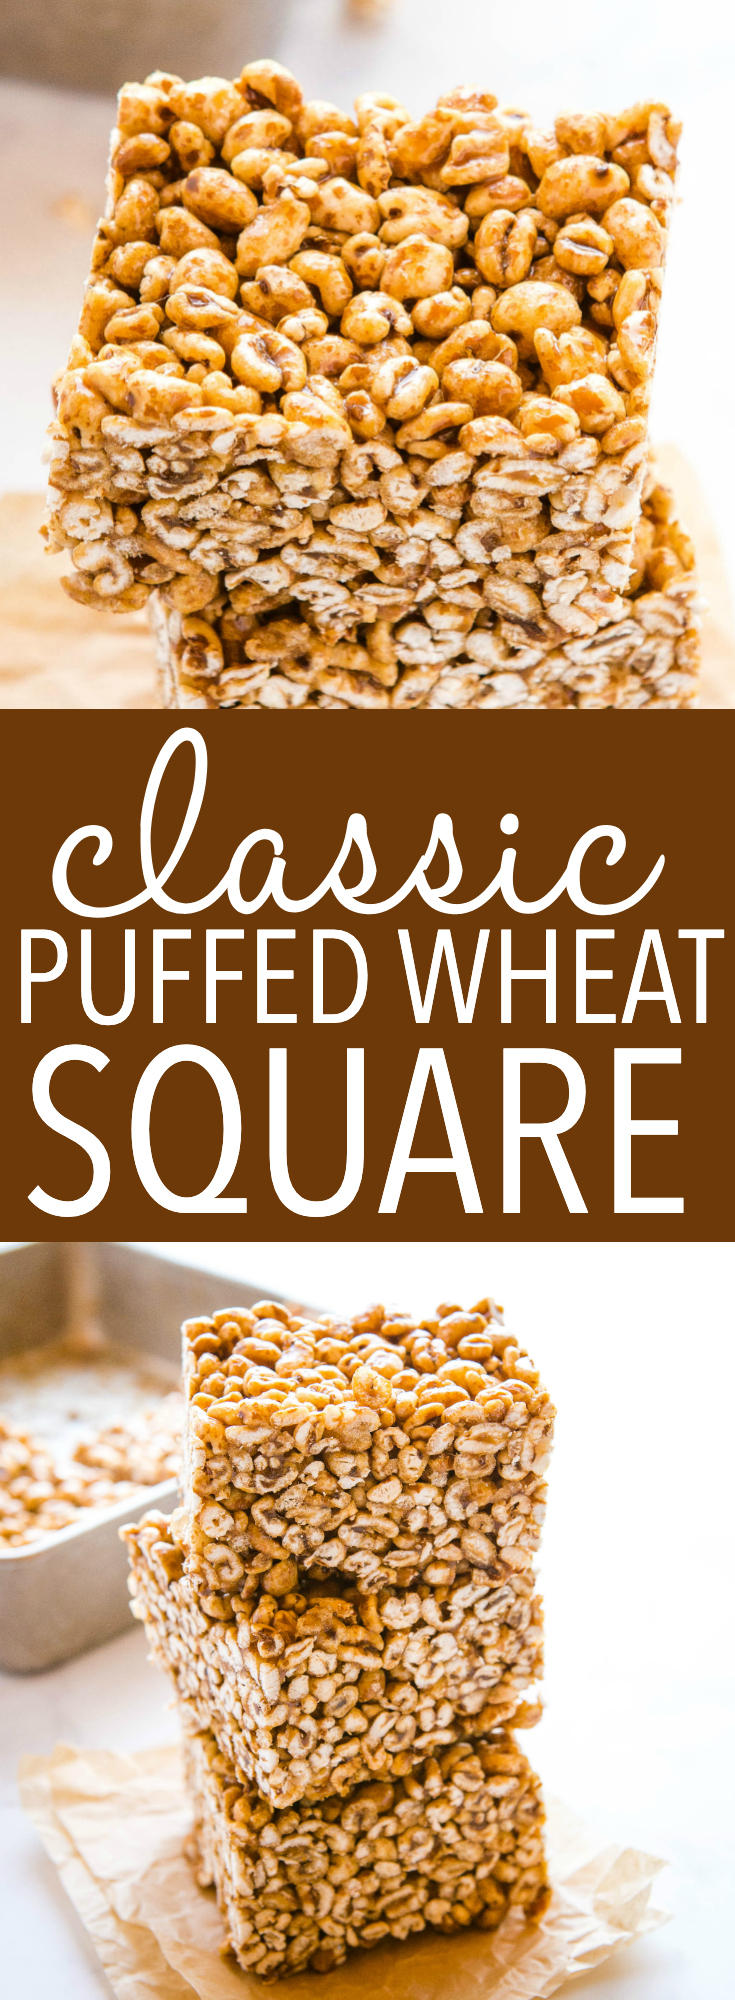 This Best Ever Puffed Wheat Square is a classic dessert recipe made with whole grain puffed wheat and a sticky caramel sauce. Perfect for dessert or an after-school treat! Recipe from thebusybaker.ca! #puffedwheat #caramel #treat #cake #square #baking #nobake #dessert #classic #afterschool #familyrecipe via @busybakerblog